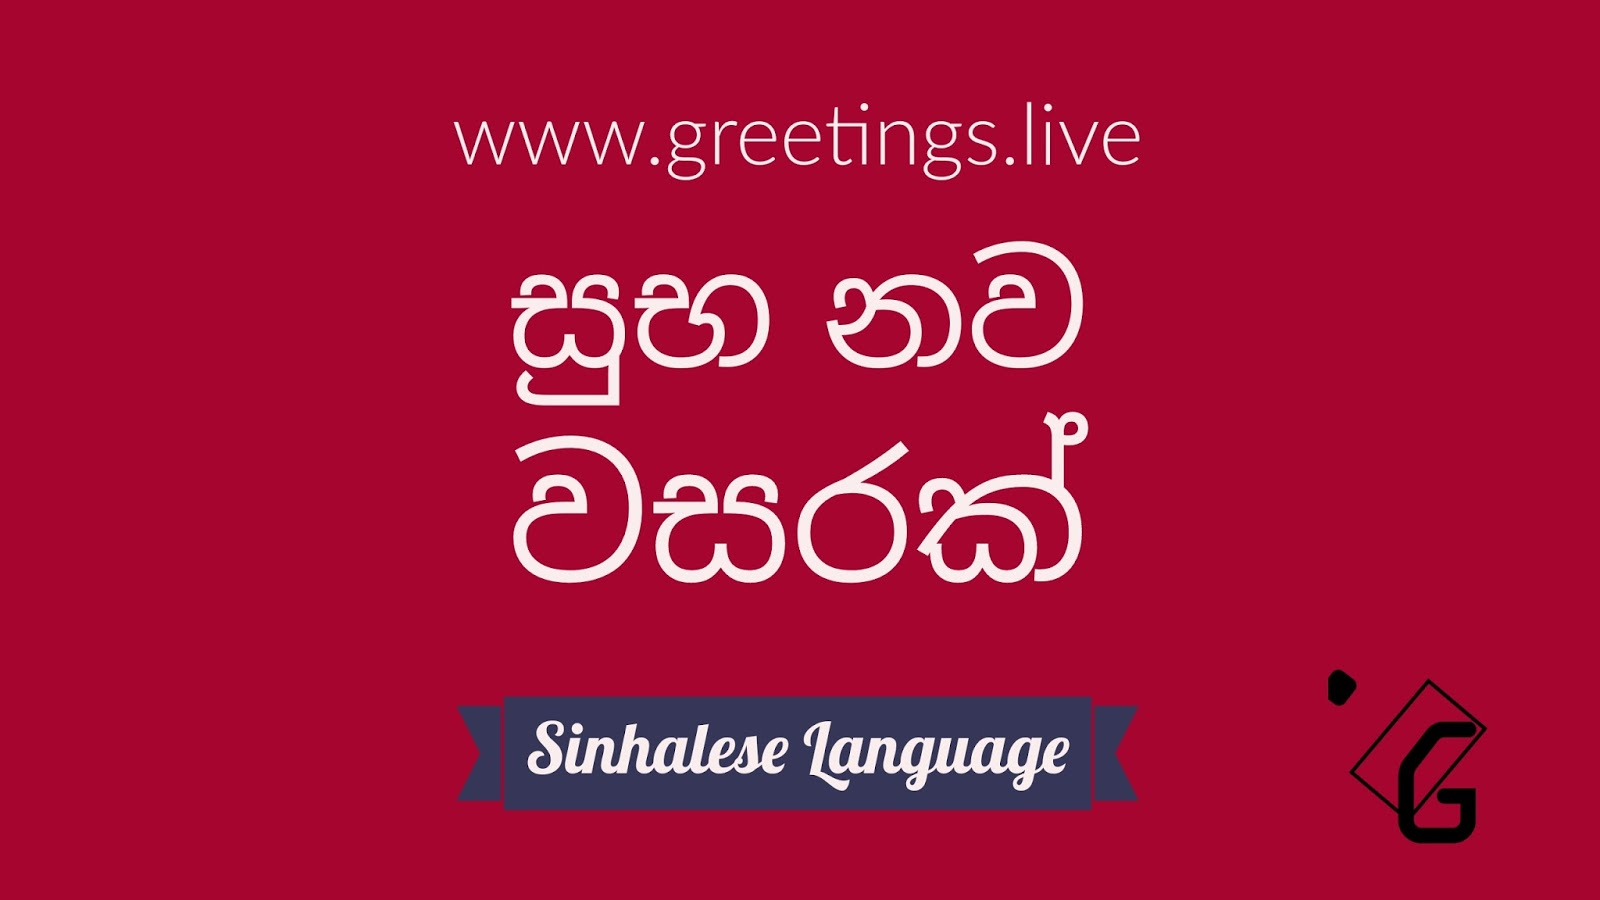 2018 New Year Wishes Greetings Sinhalese Language Greetings On